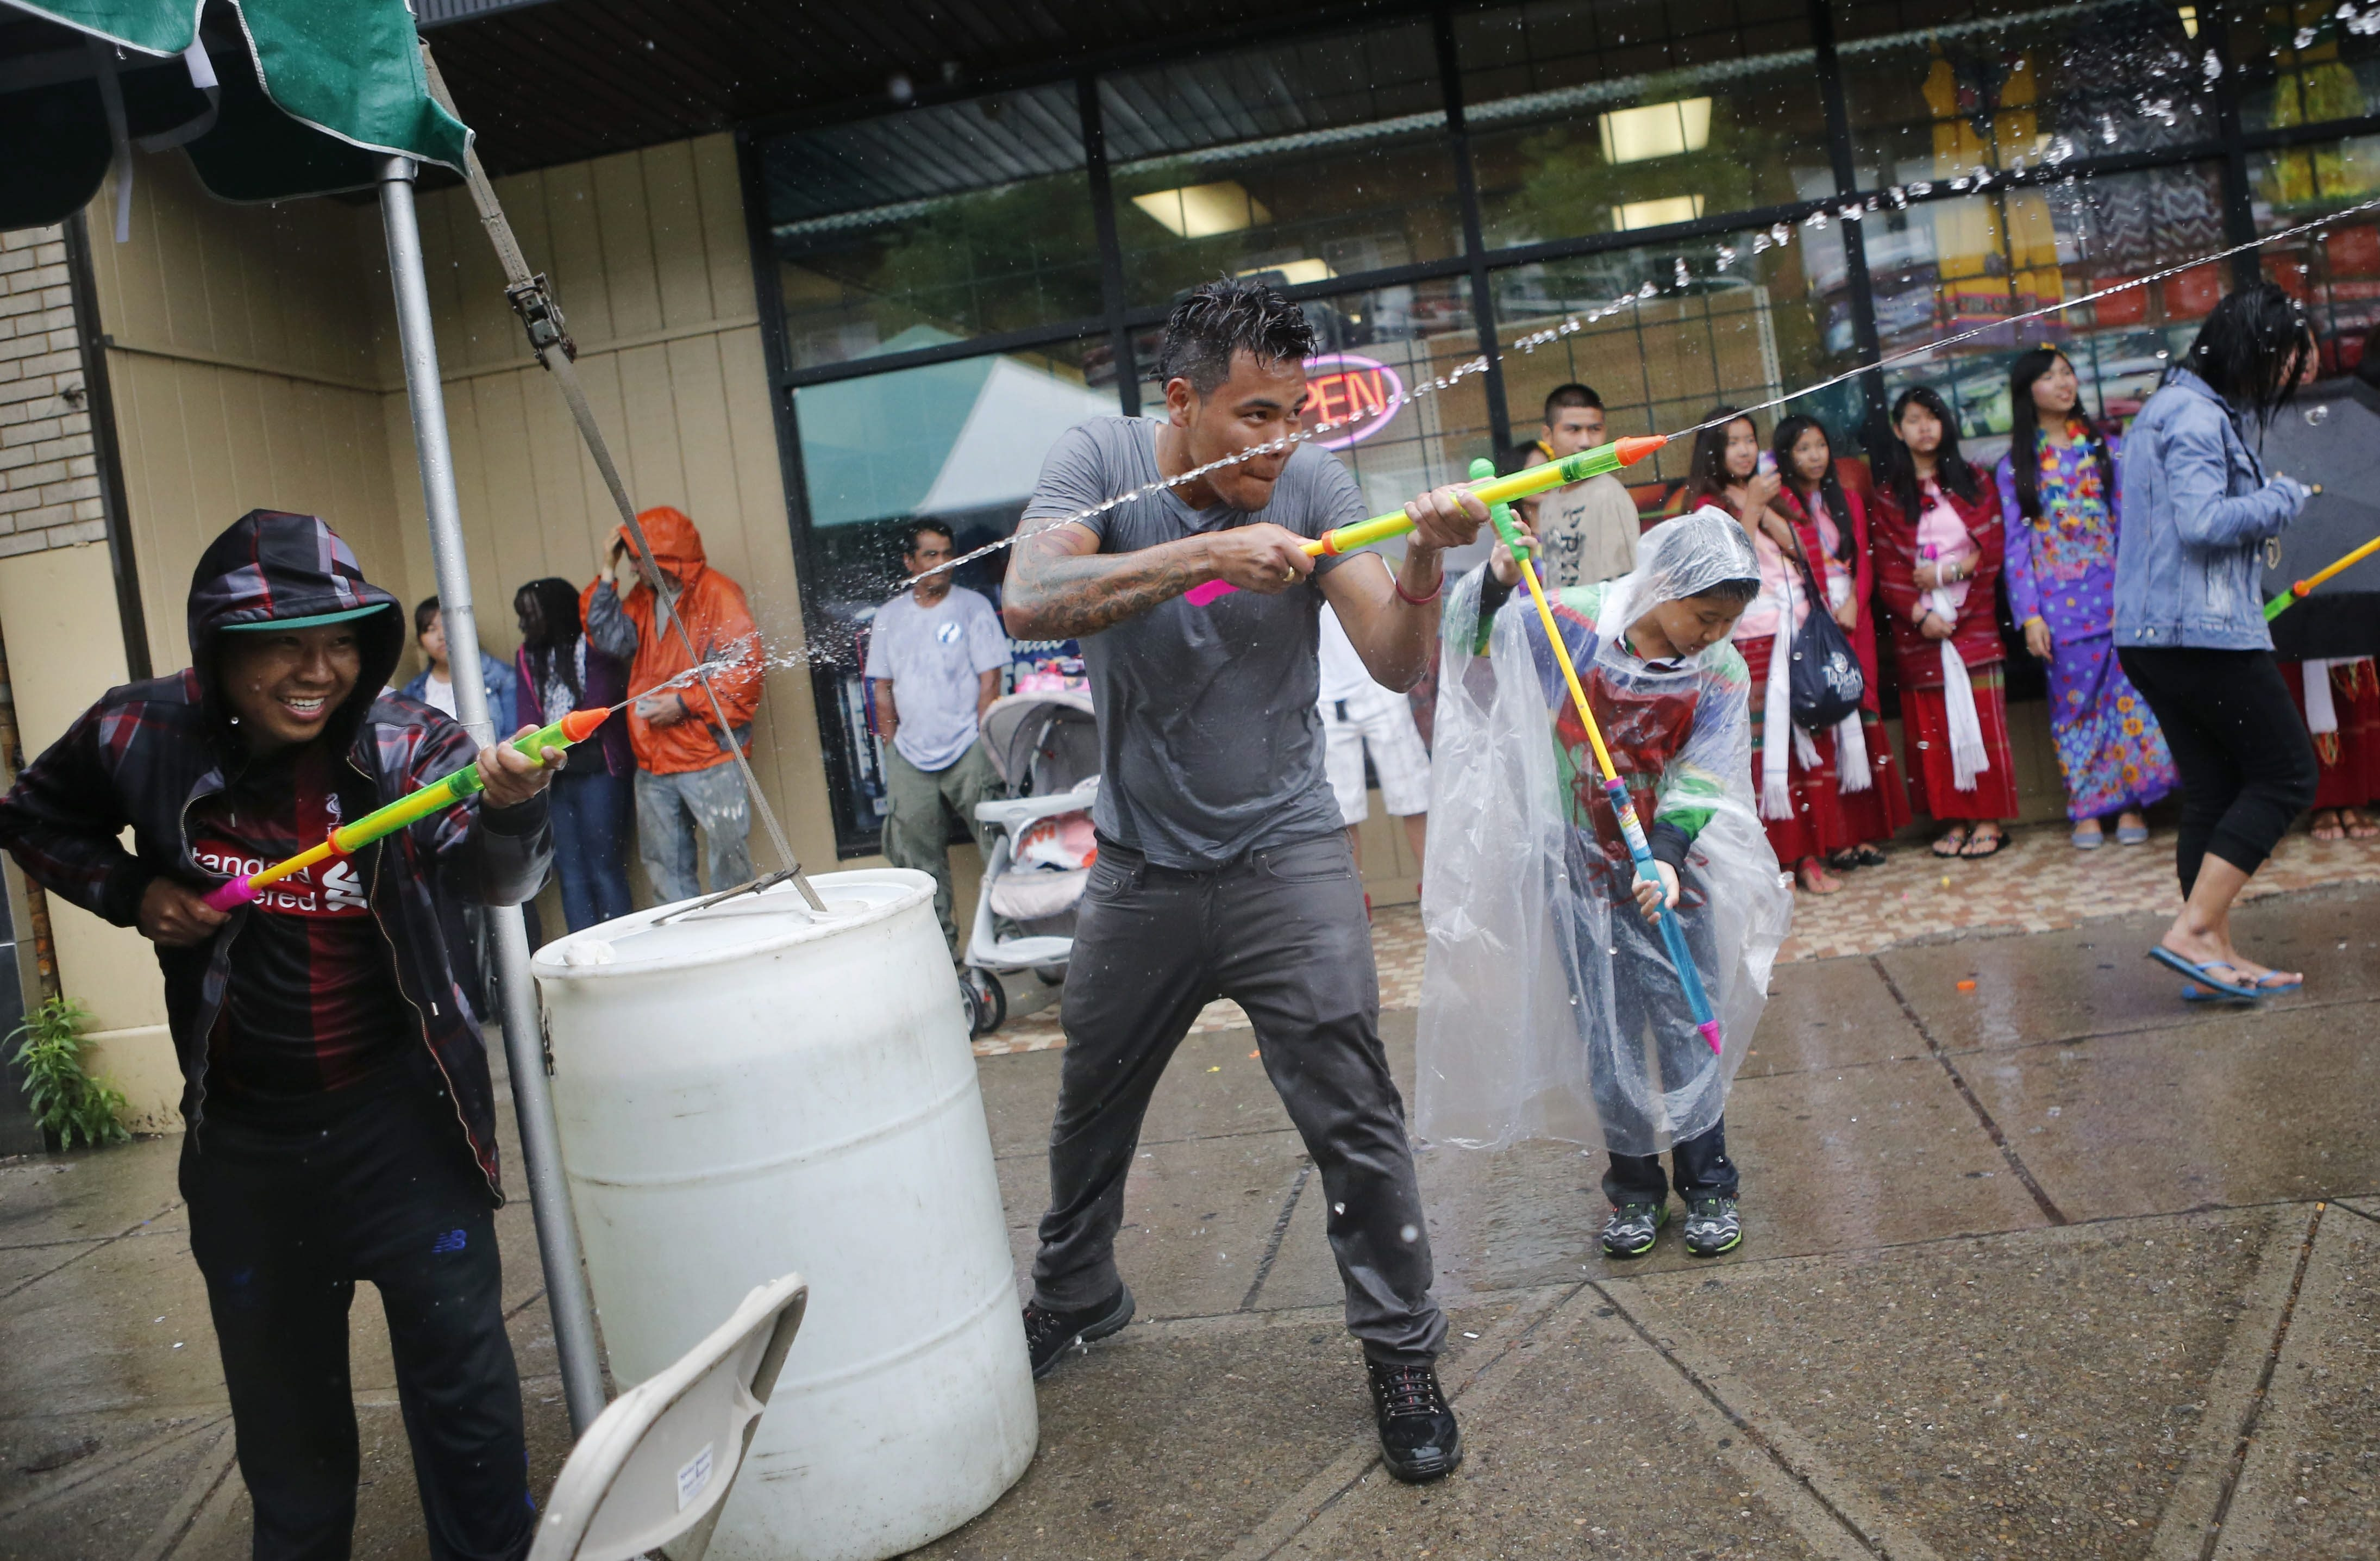 Min Saw, left, and Lah A, center, spray revelers with water at the Myanmar Water Festival on Grant Street. Over 200 people gathered to drench each other in a ritual that intends to symbolized purification.